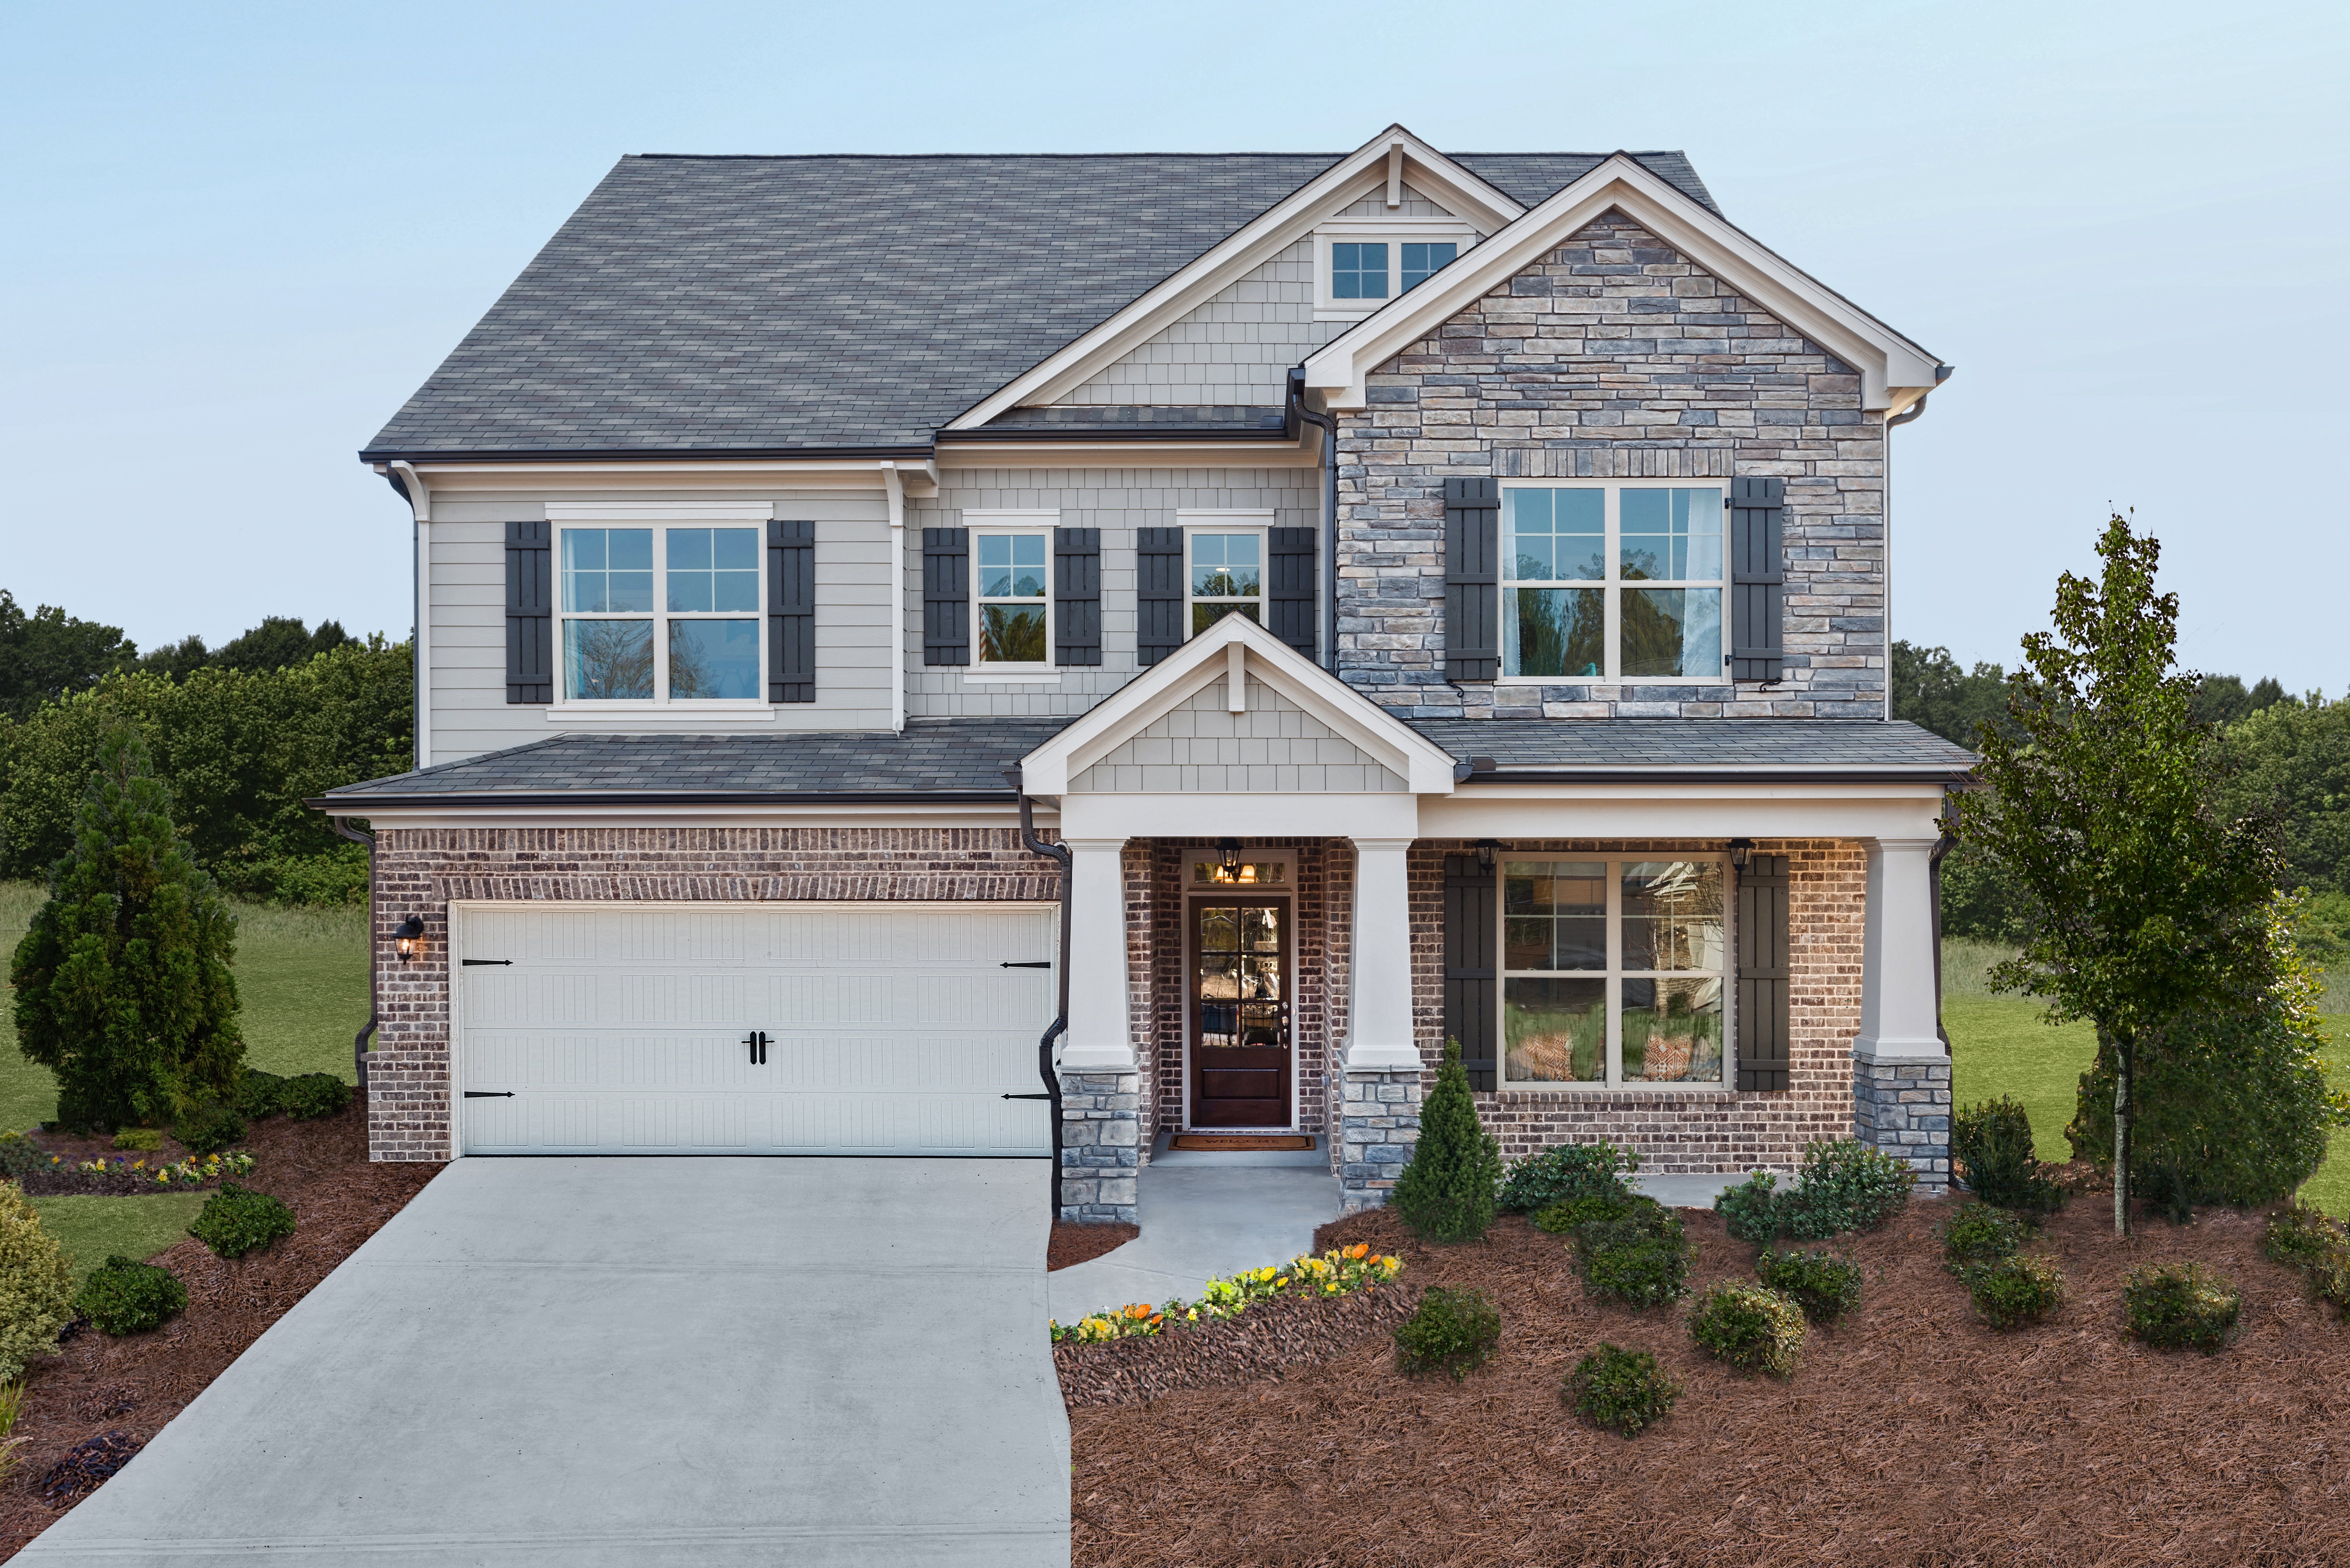 ryland homes atlanta opens new decorated model at marketplace